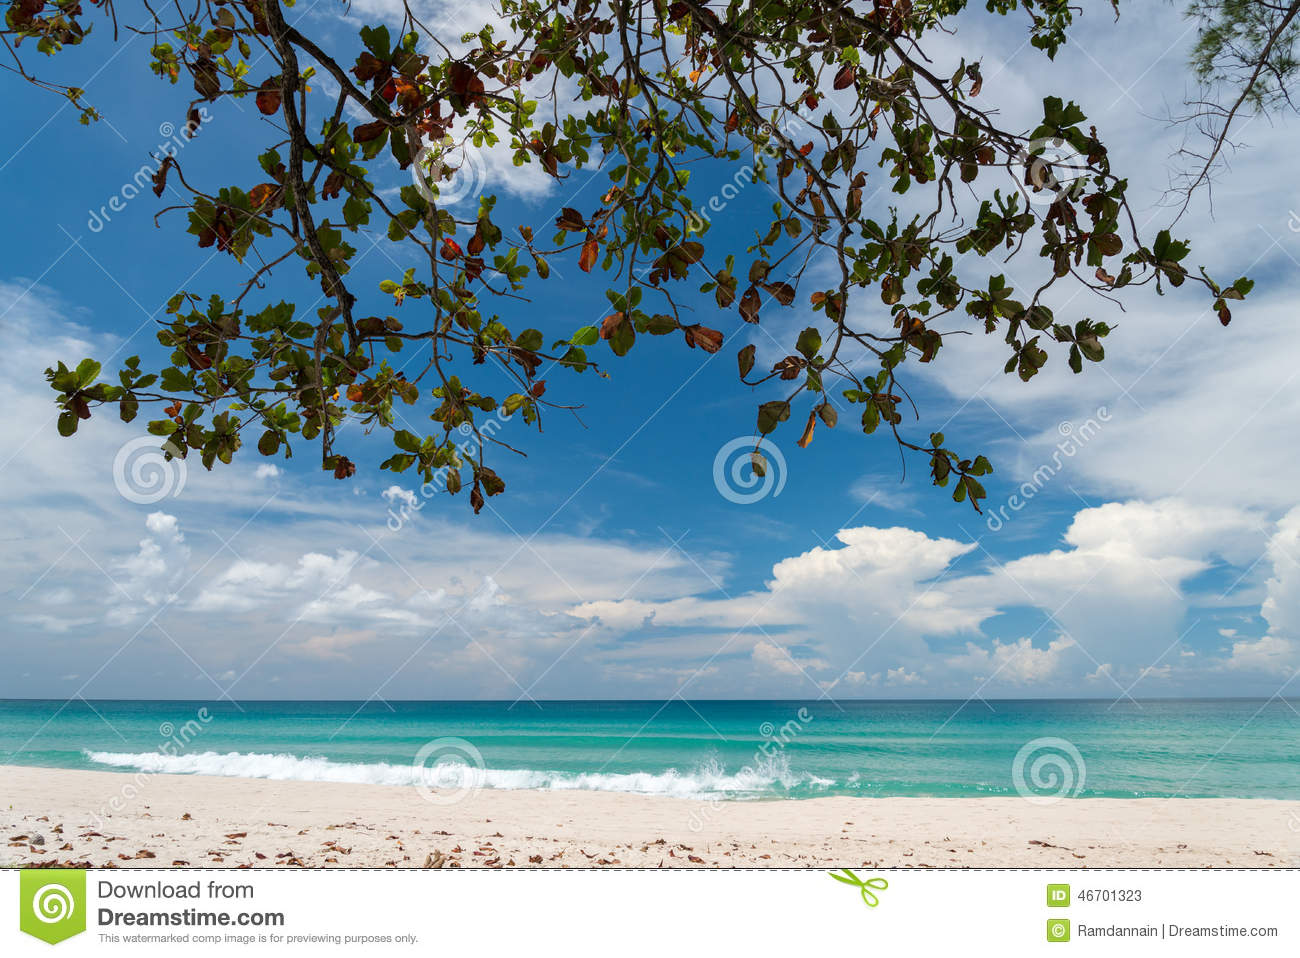 Tranquil View of Foliage, Turquoise Sea and White Sandy Beach